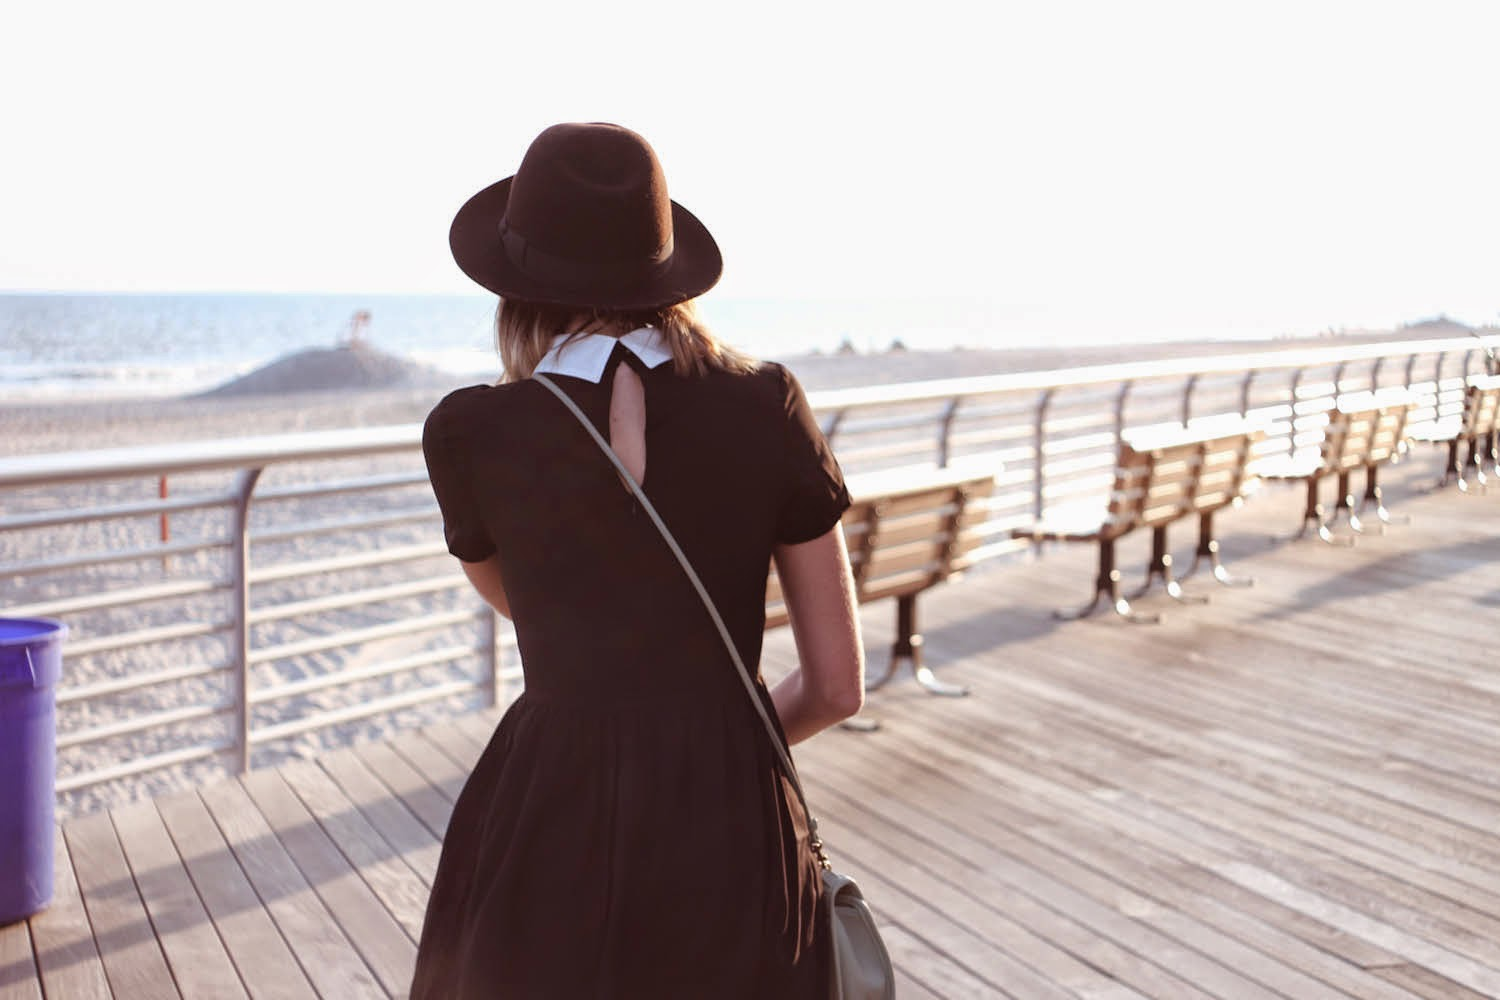 romwe dress, white collar, mint coach bag, long beach boardwalk, nyc vintage fashion